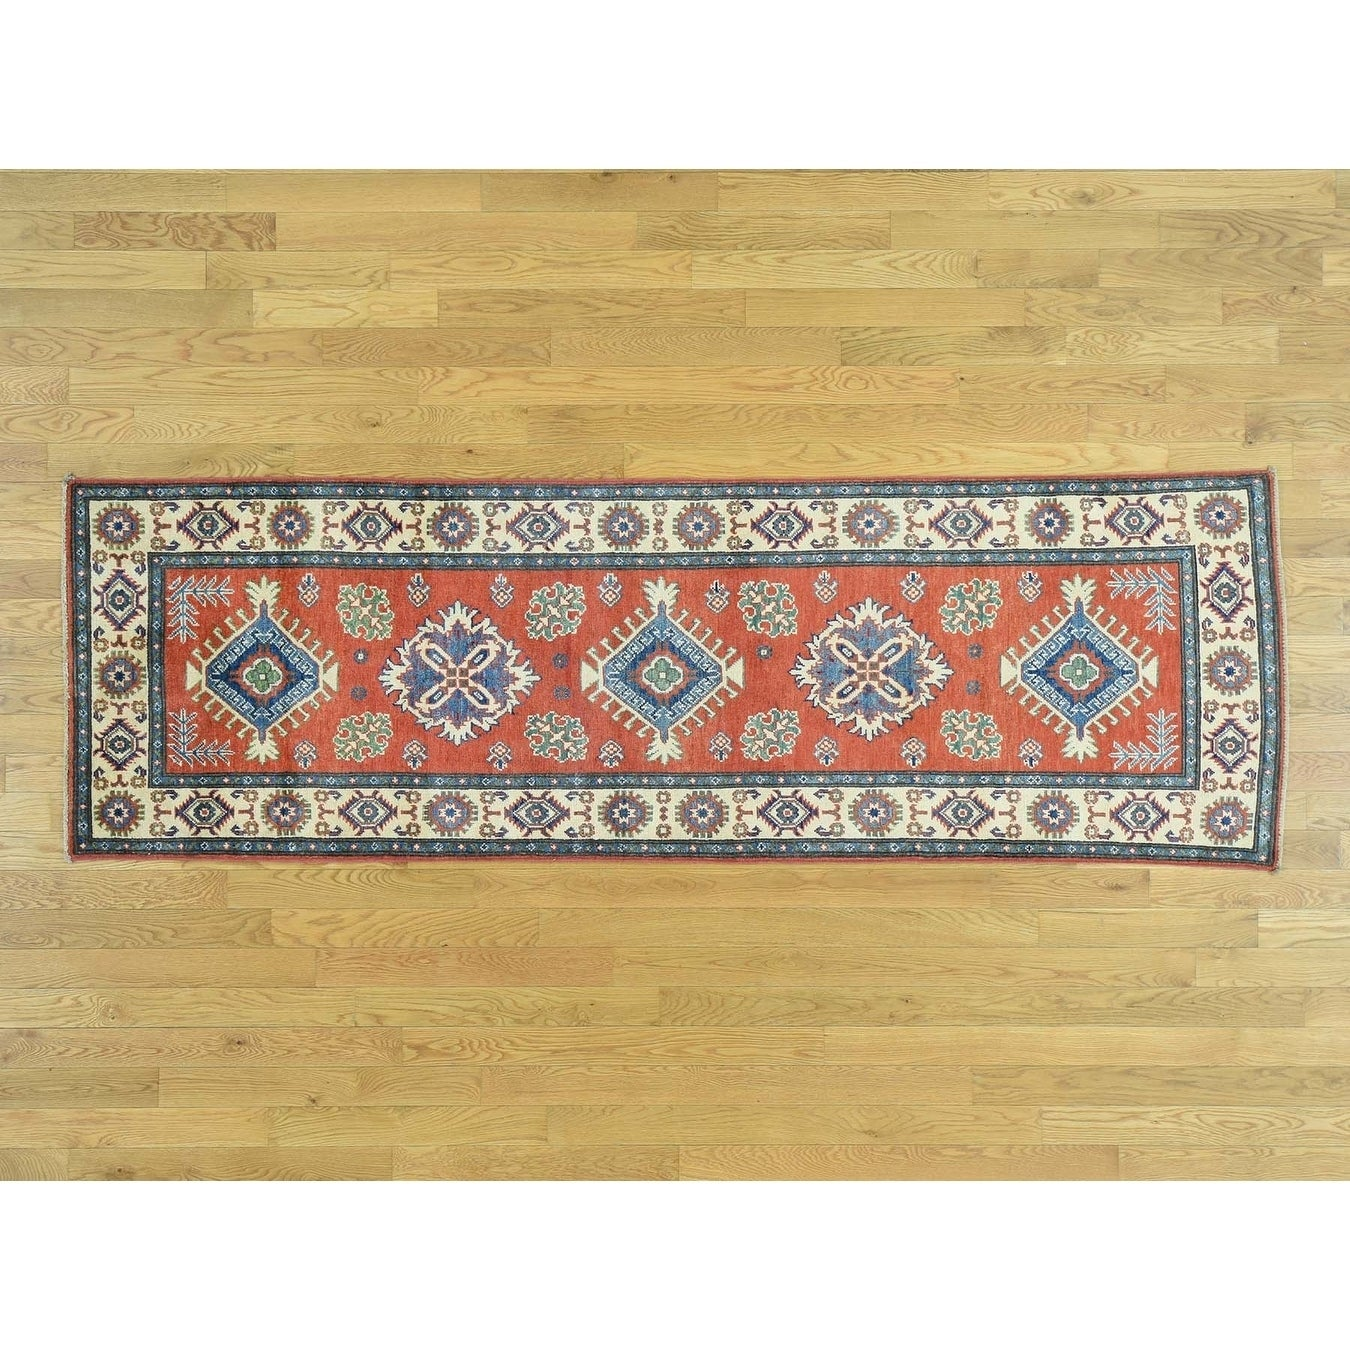 Hand Knotted Red Kazak with Wool Oriental Rug - 28 x 88